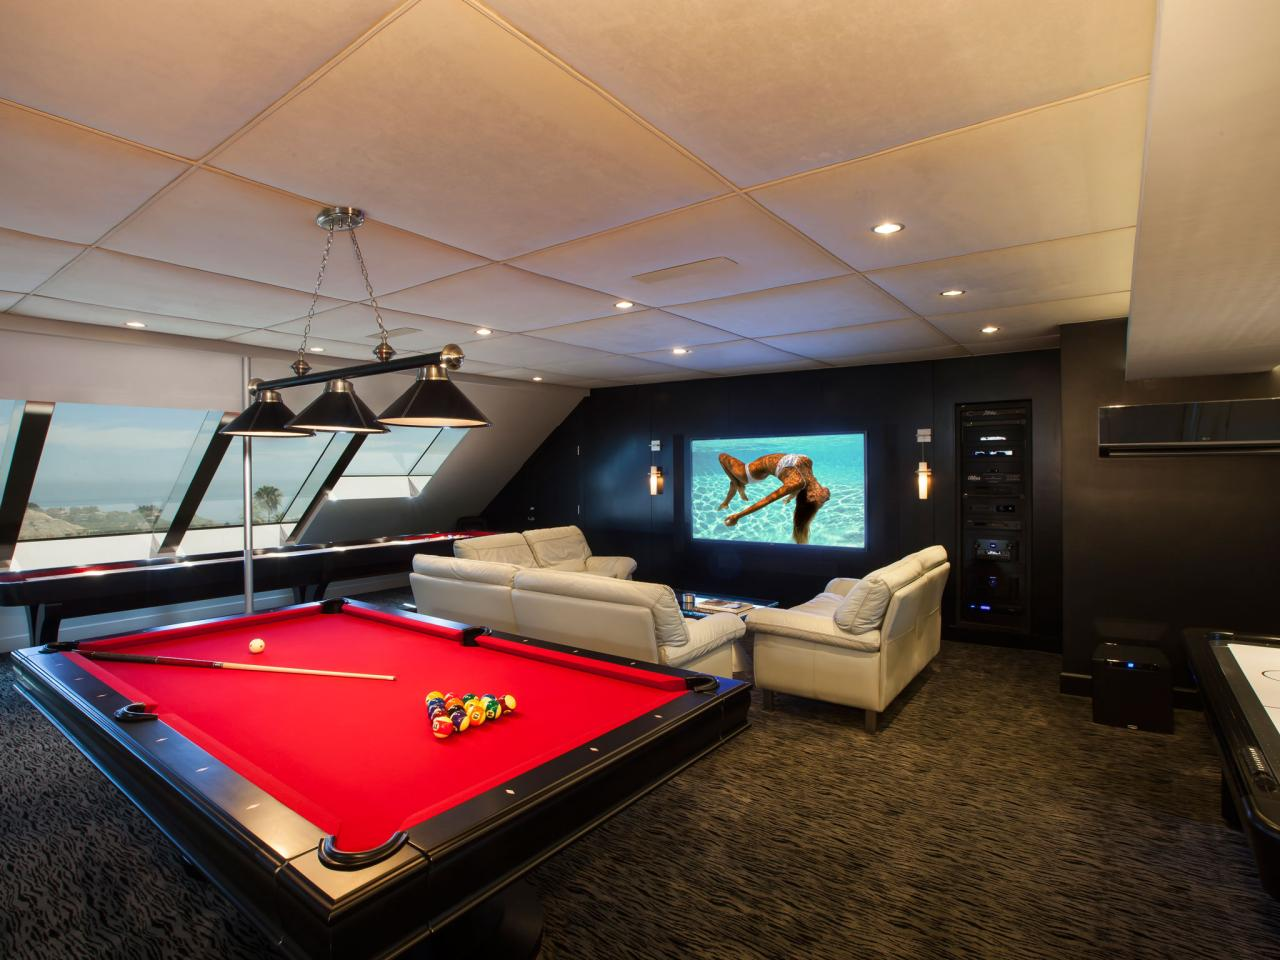 Best man cave installation ideas 23 - Using Unique Architecture To Create Unique Designs